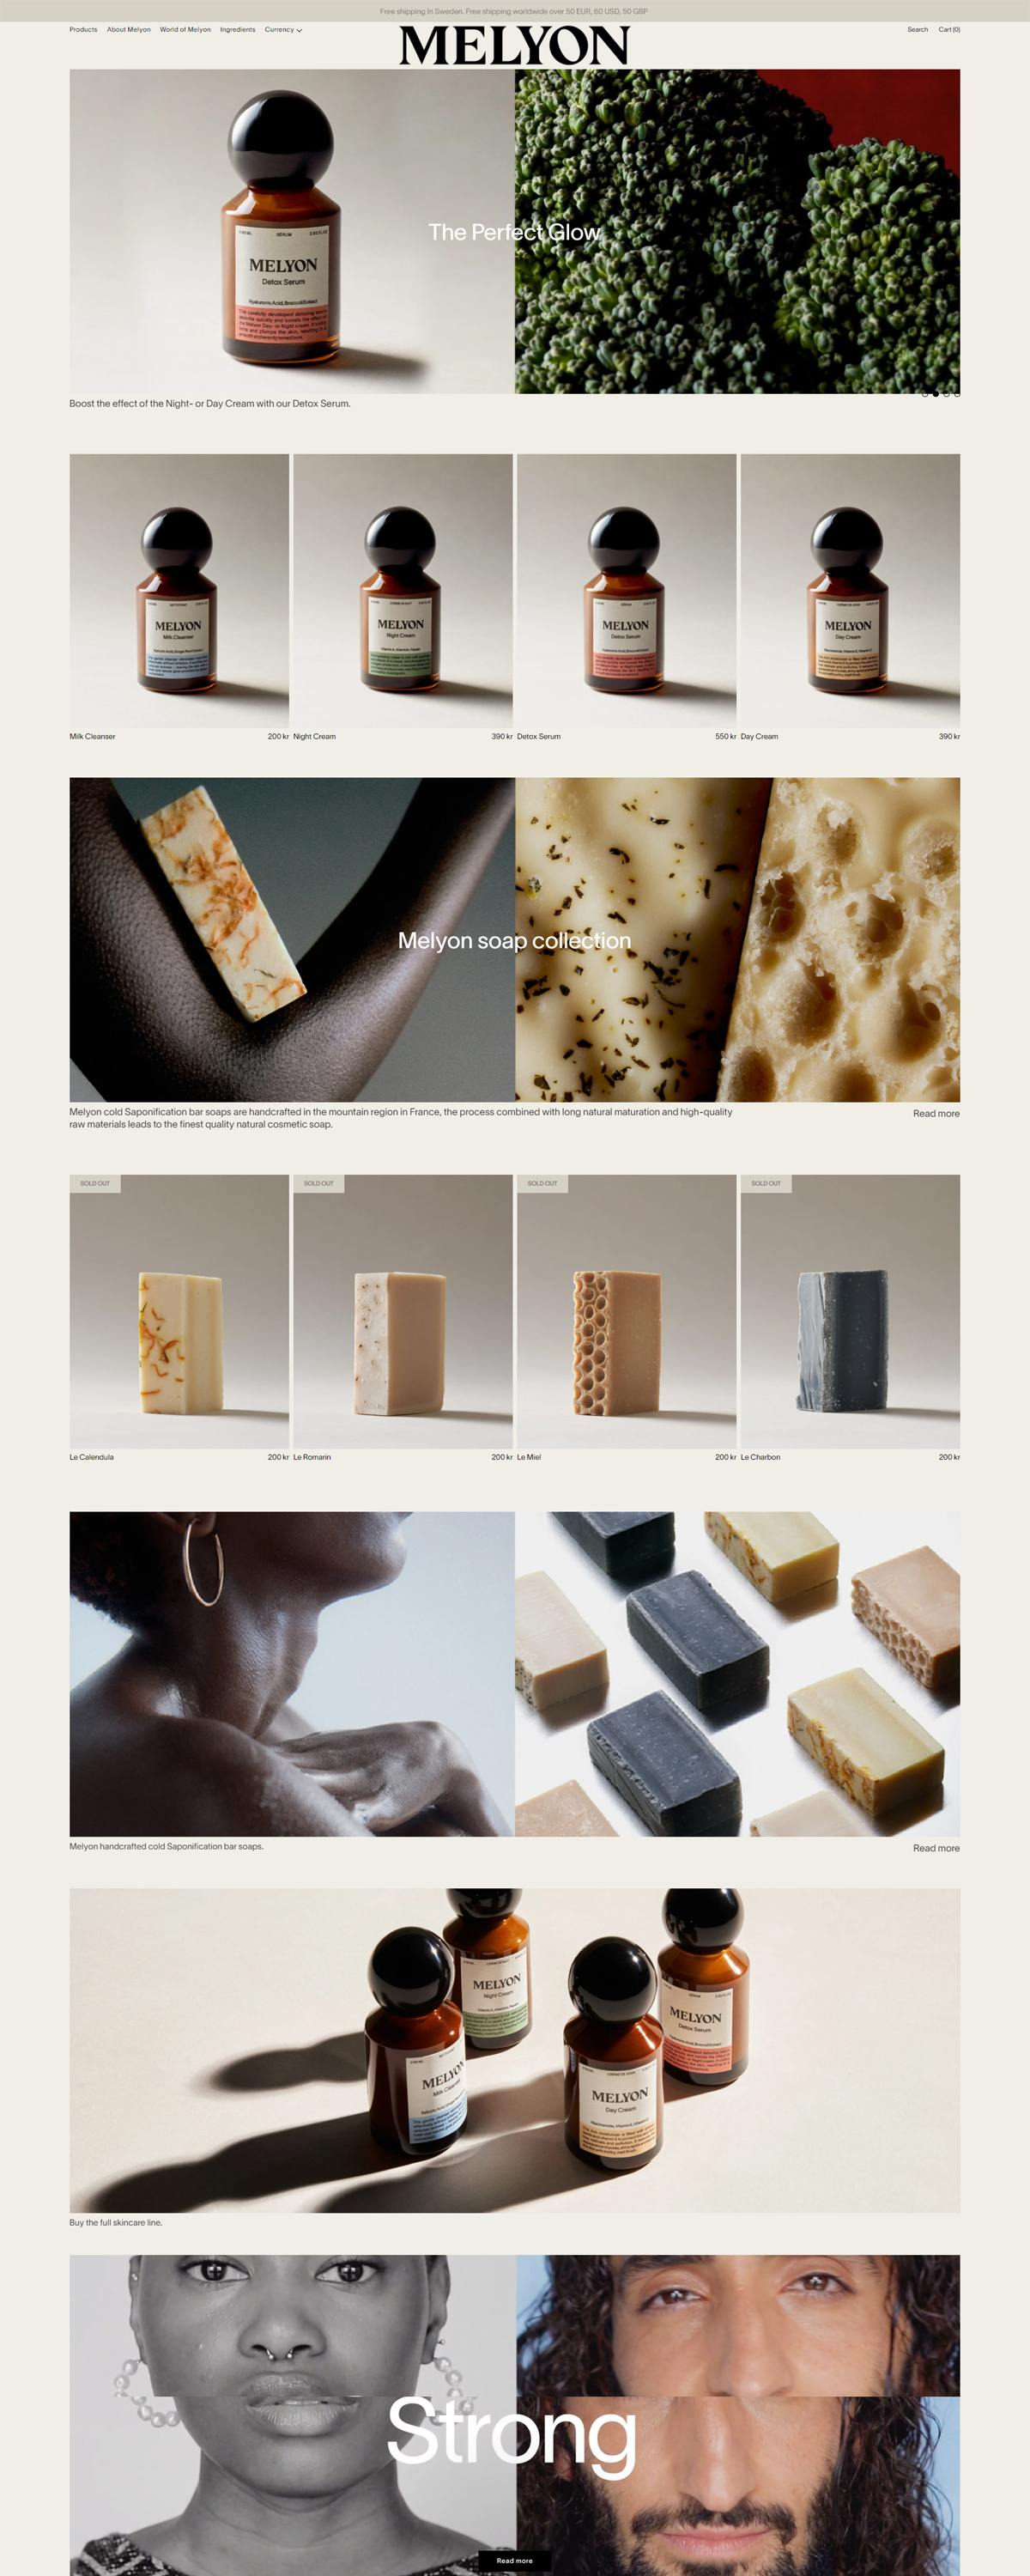 eCommerce website: Melyon